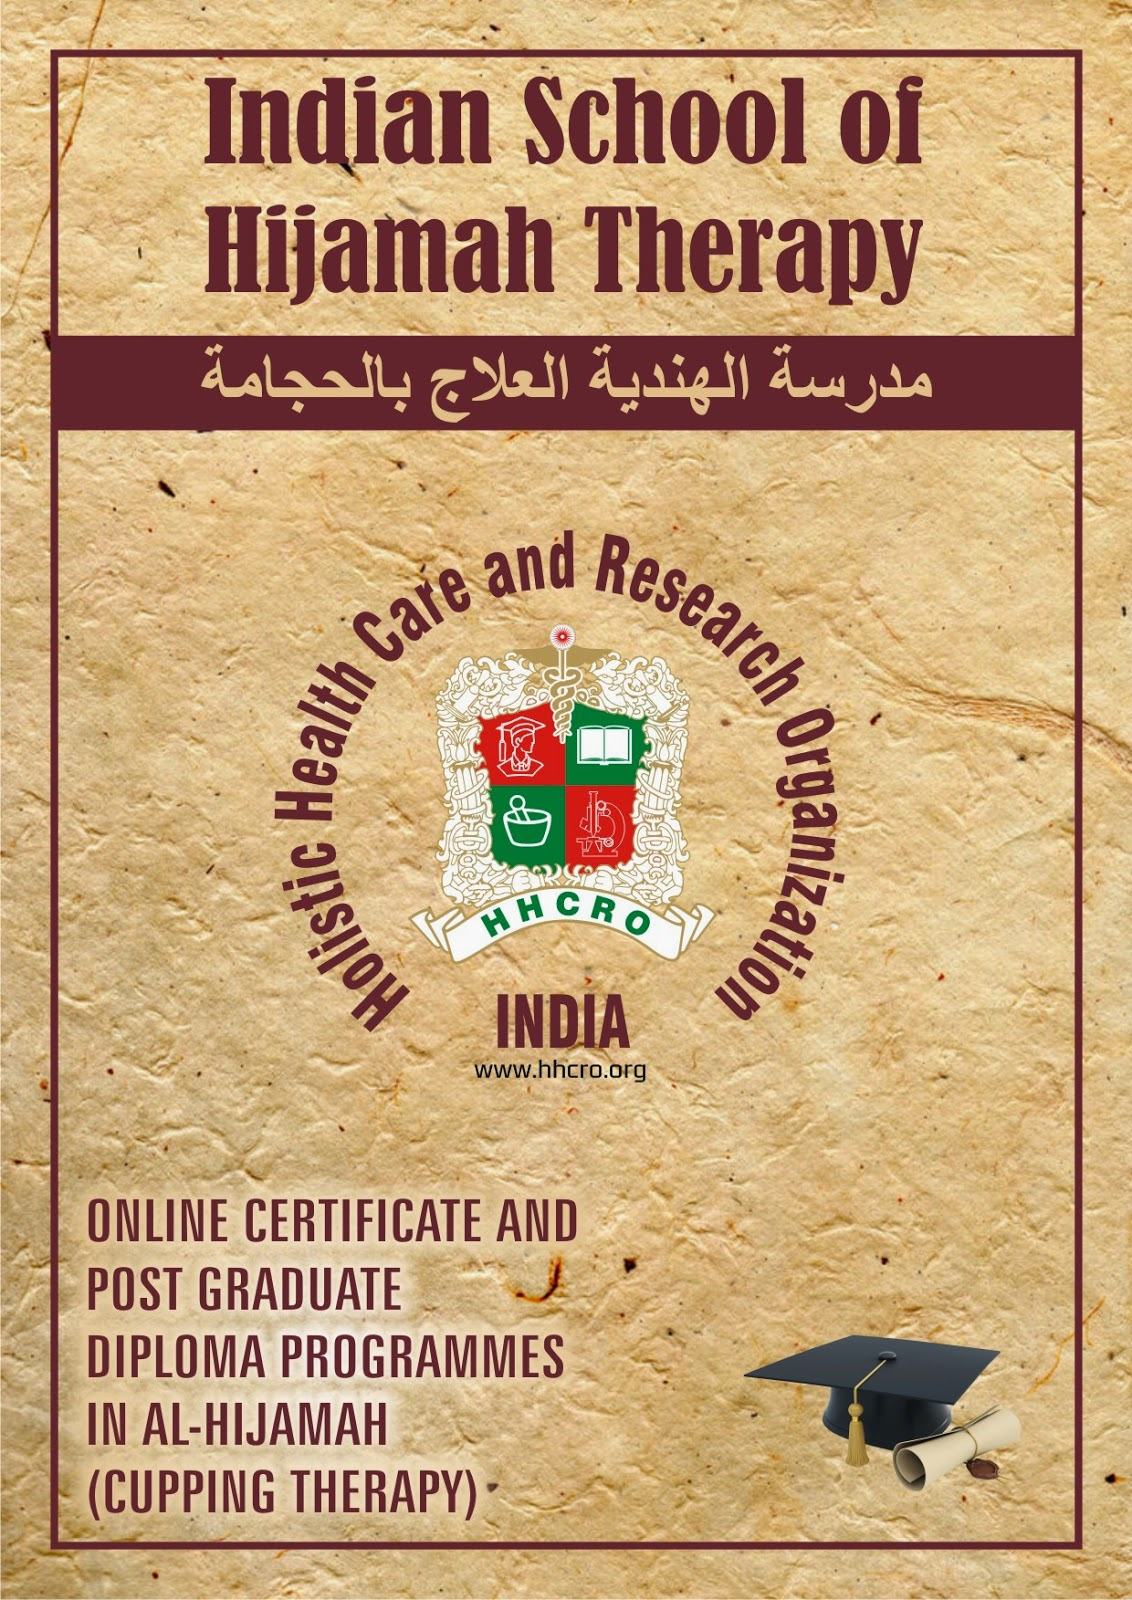 Ahealth march 2015 established indian school of hijamah therapy isht to impart education on hijamah therapy through online certificate and diploma courses which are designed xflitez Gallery